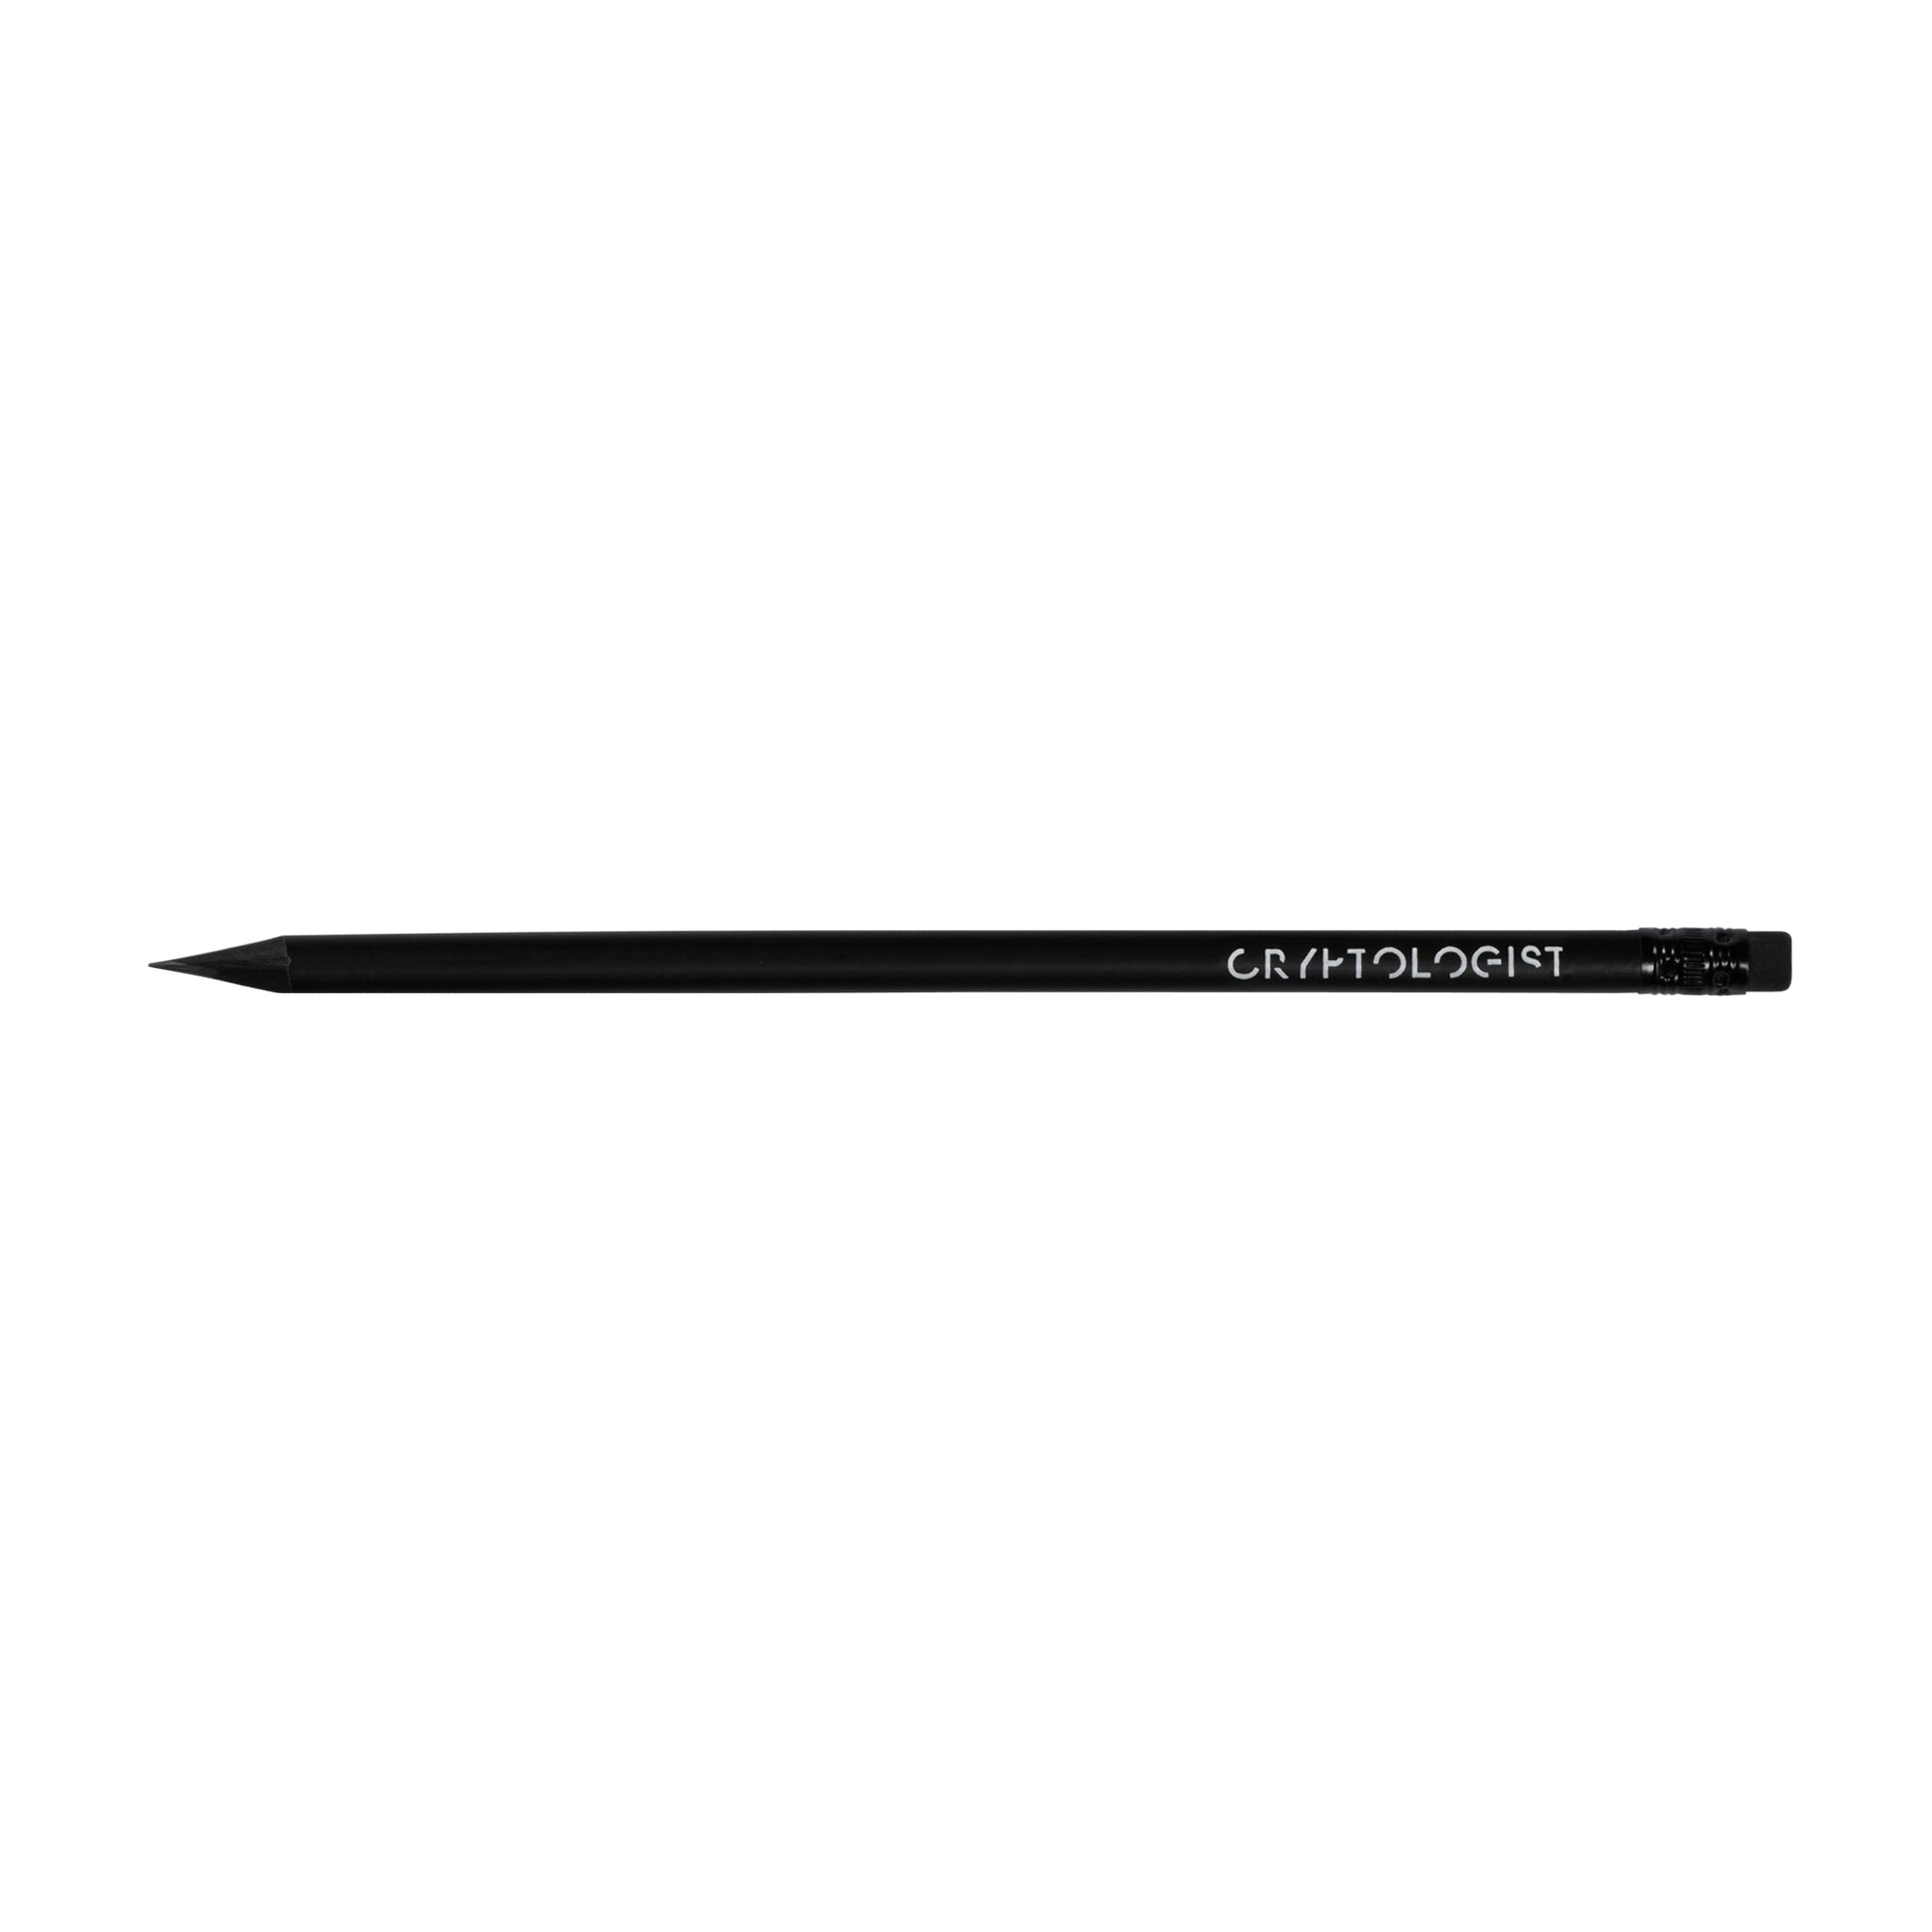 SPYSCAPE Cryptologist Pencil -